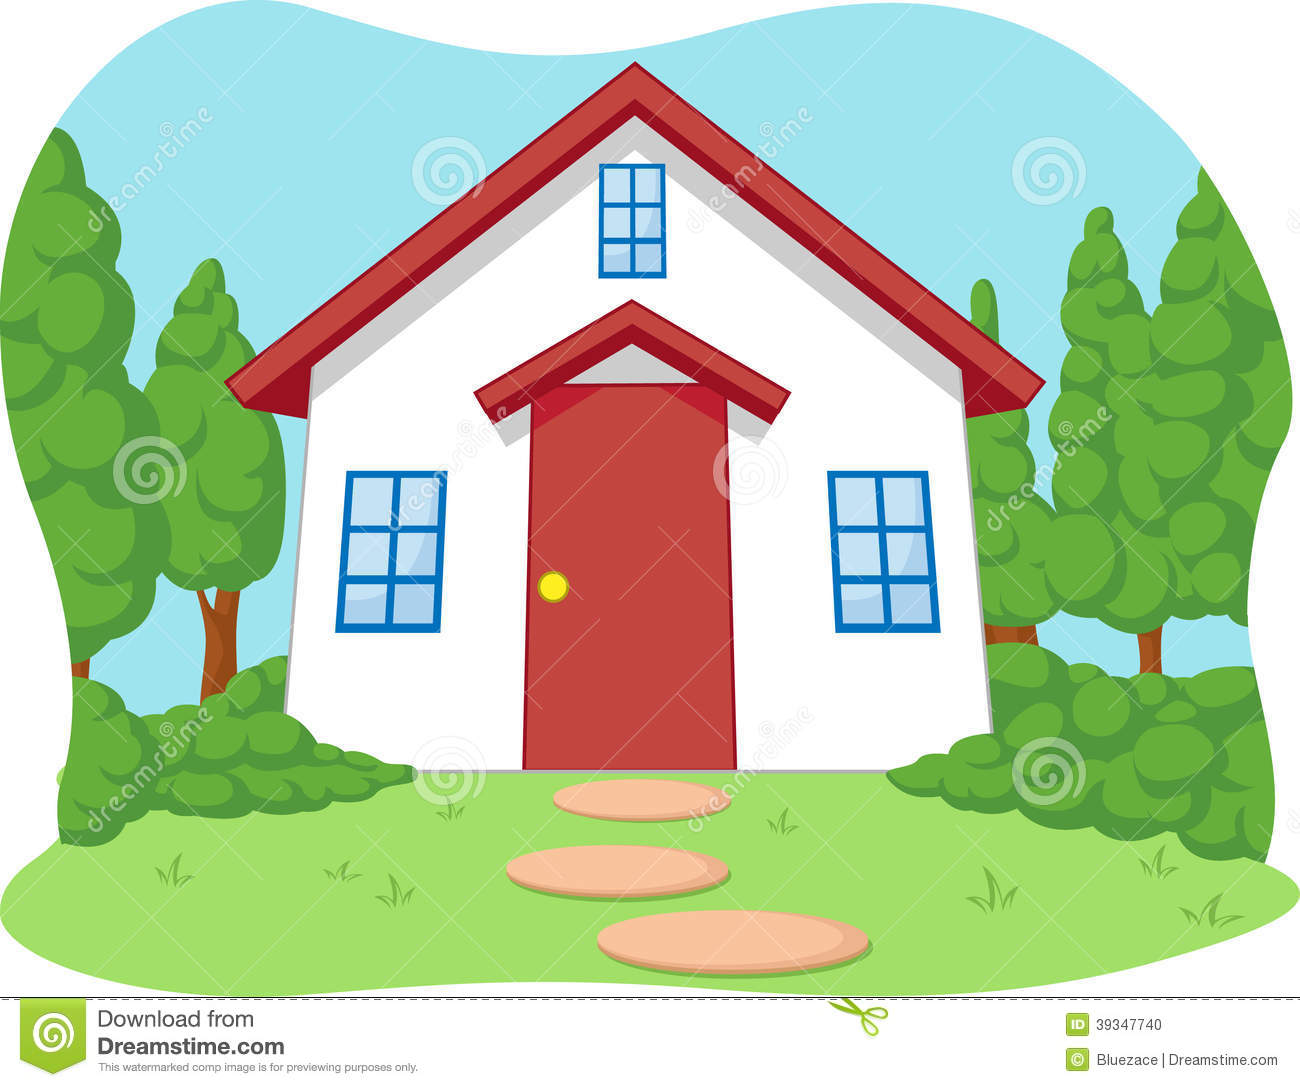 Printable Tree House Plans: Cartoon Of Cute Little House With Garden Stock Vector